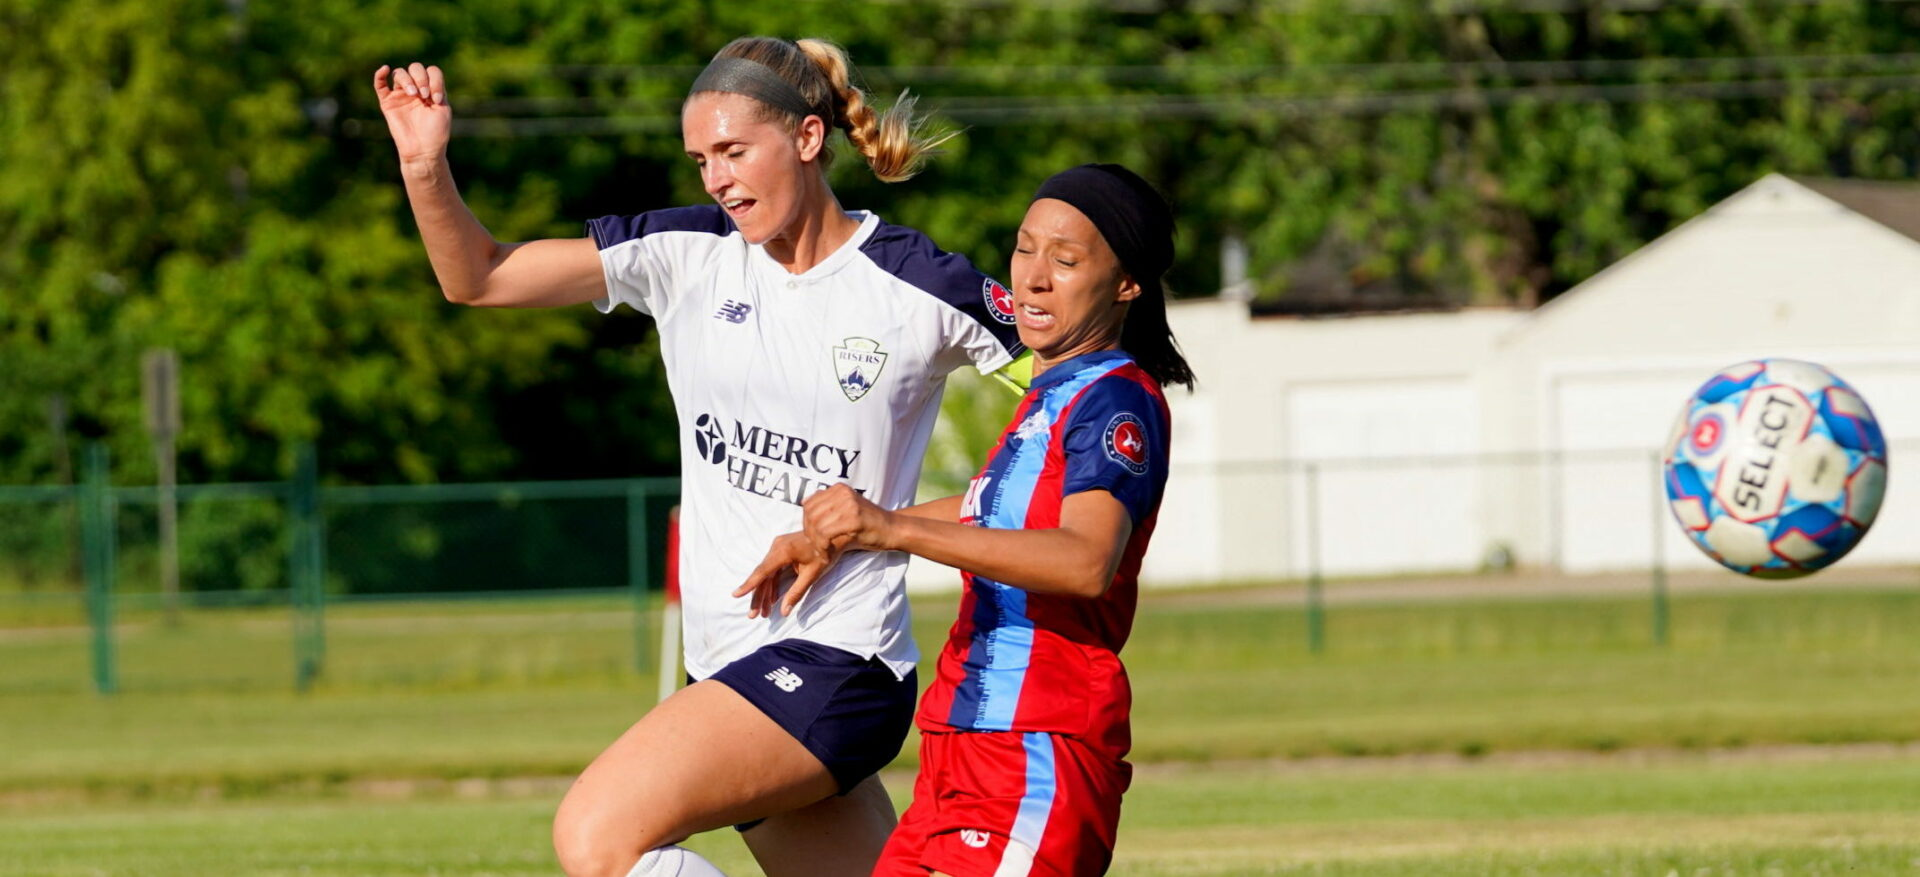 Muskegon Risers women fall to Lansing United 5-1, but show improvement from last week's painful 10-goal loss